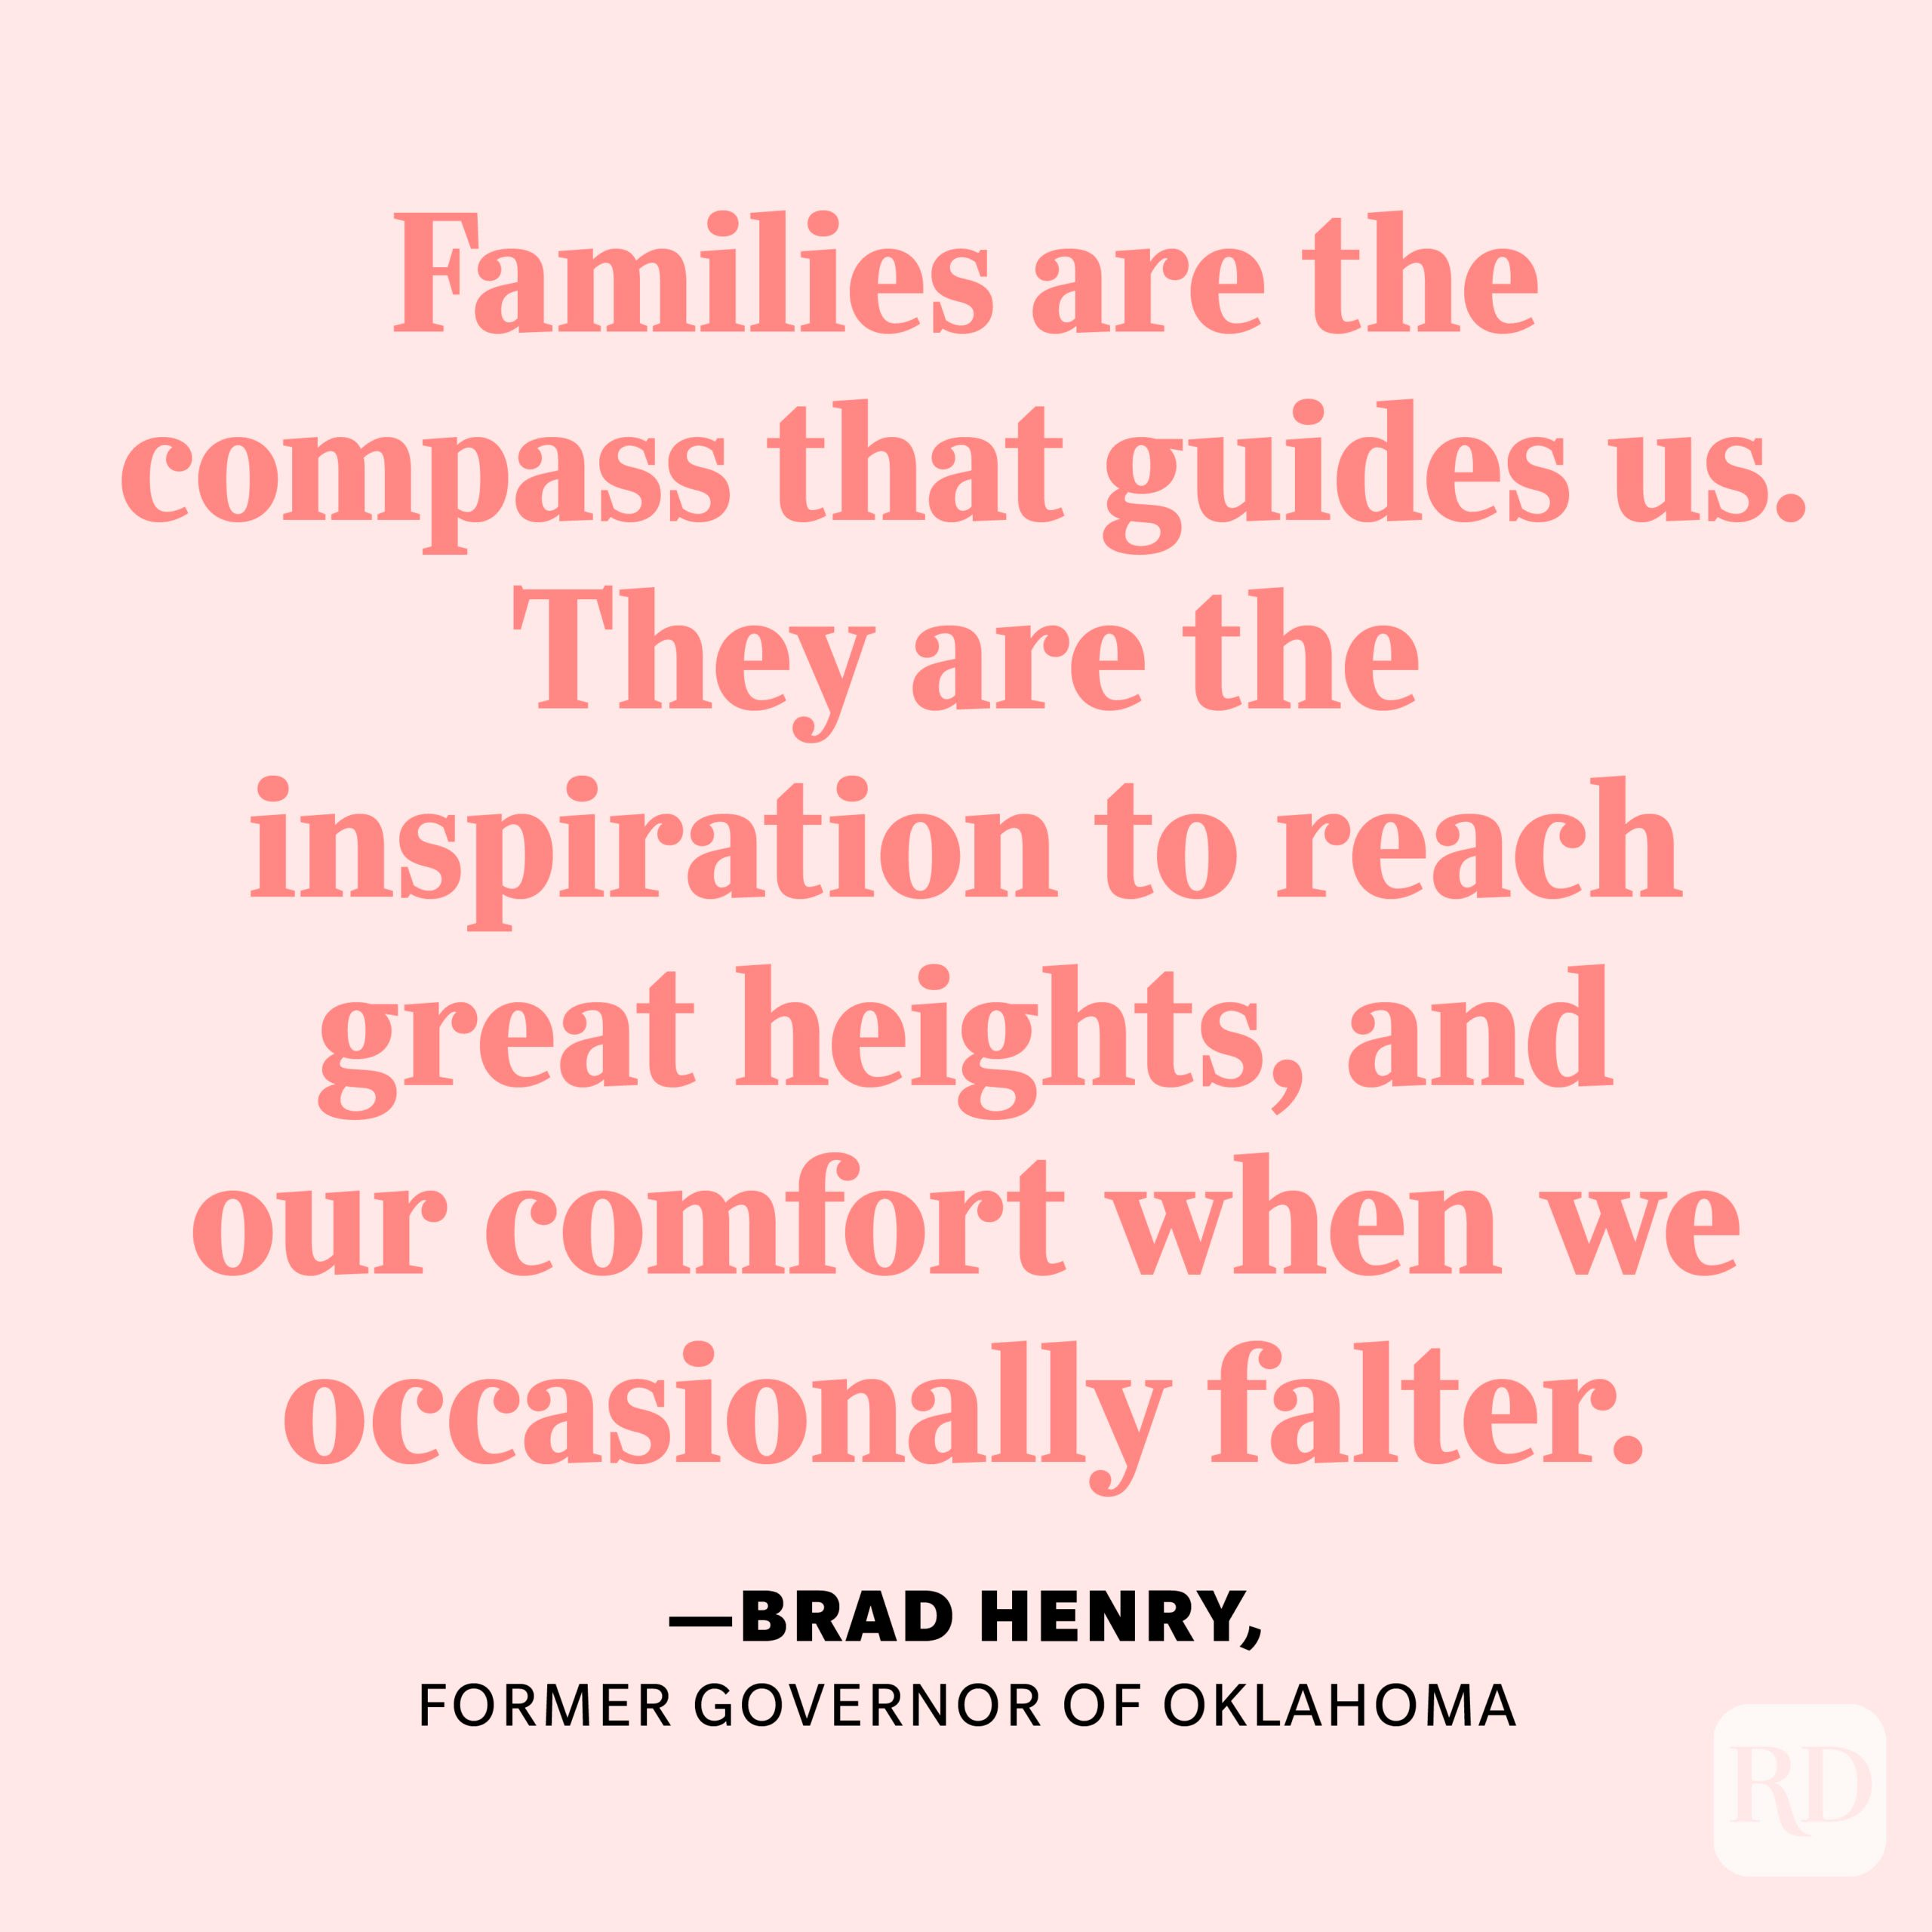 """""""Families are the compass that guides us. They are the inspiration to reach great heights, and our comfort when we occasionally falter."""" —Brad Henry, former governor of Oklahoma."""